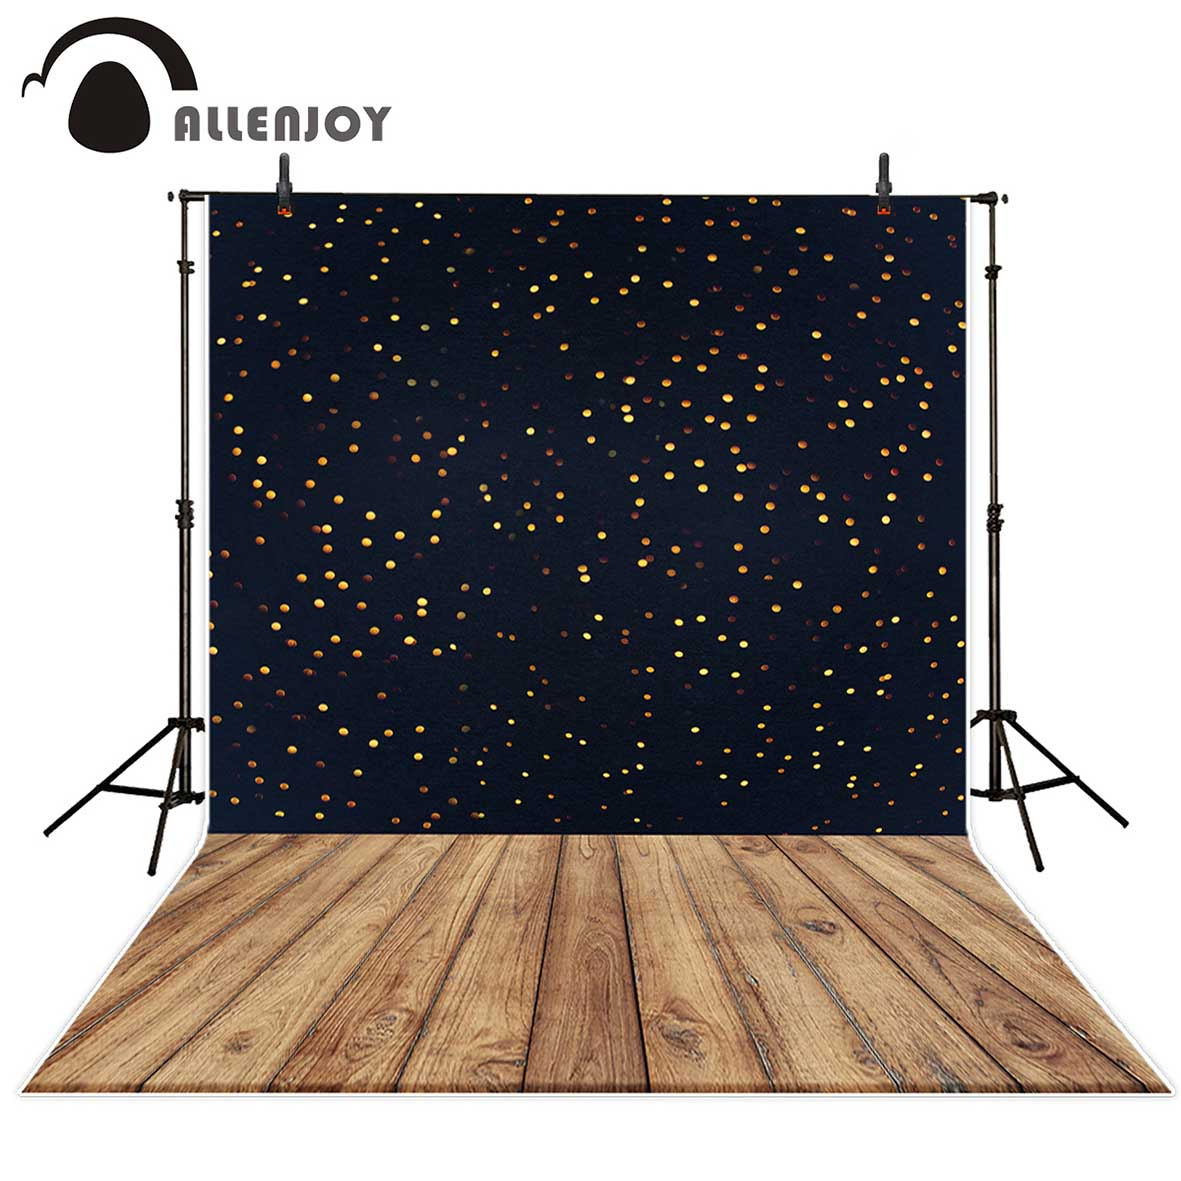 Allenjoy photography backdrops Black background gold bokeh dots wooden board backgrounds for photo studio for baby